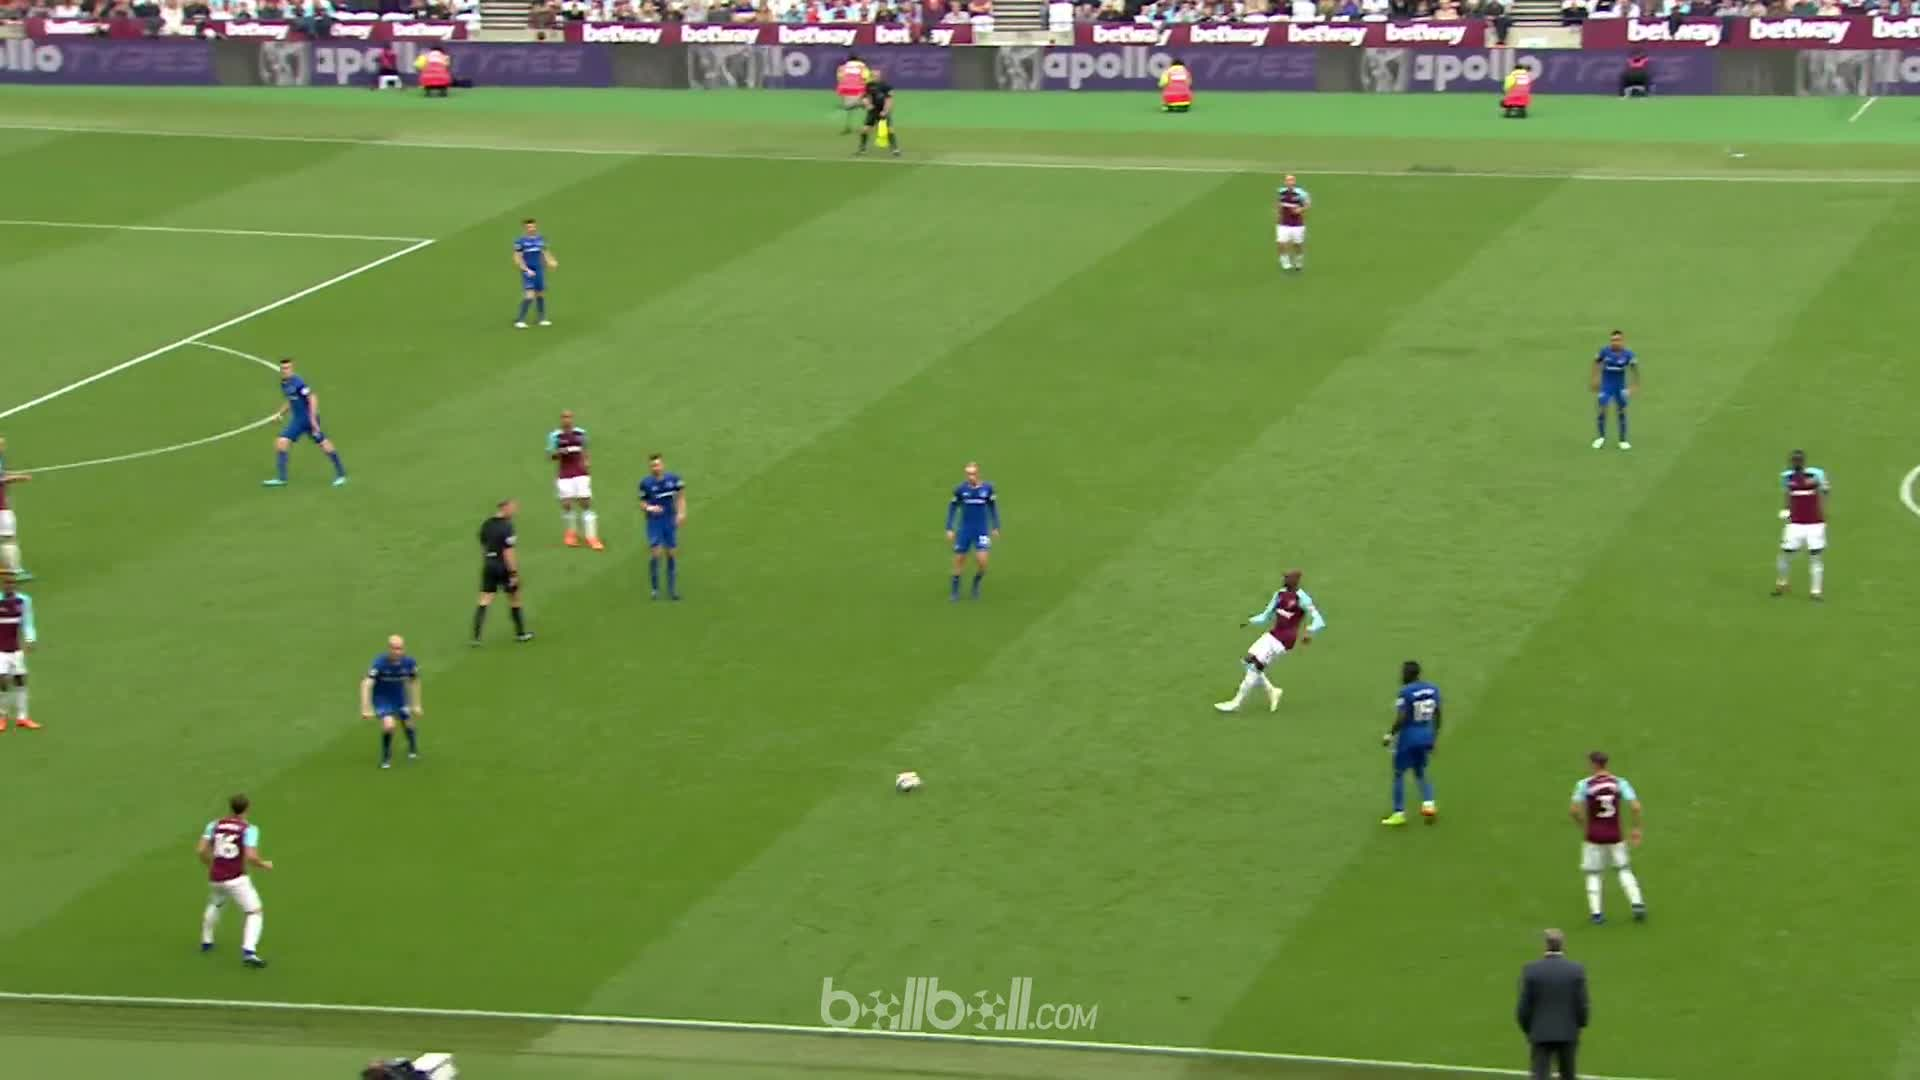 Goal M Arnautovic West Ham 2 - 0 Everton